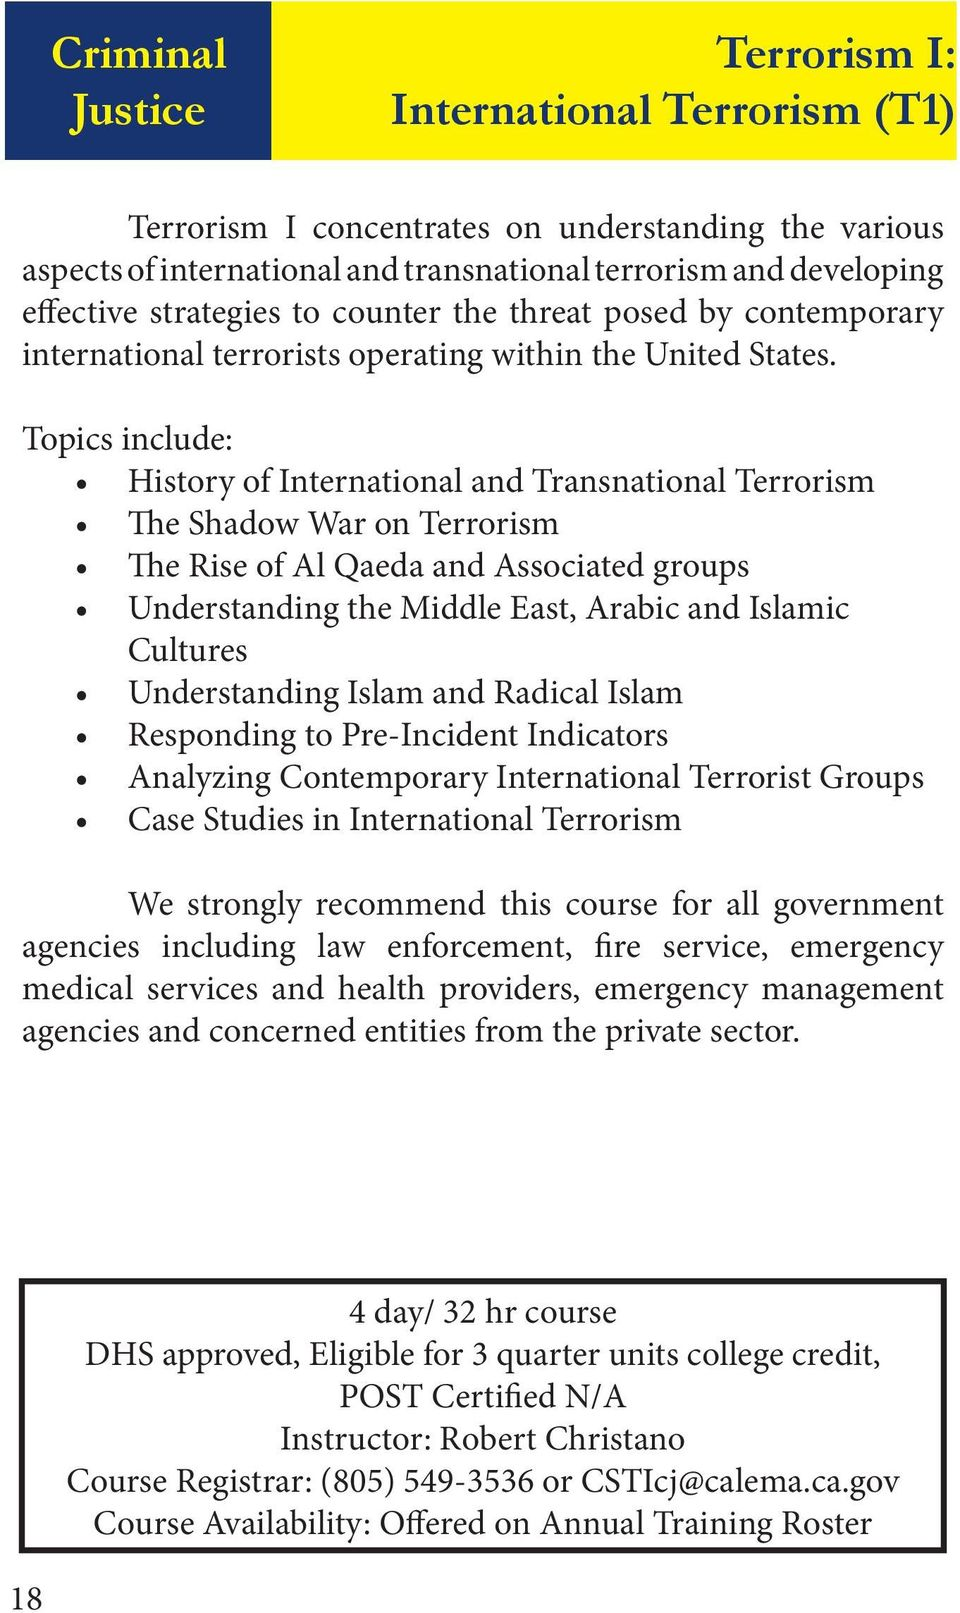 Topics include: History of International and Transnational Terrorism The Shadow War on Terrorism The Rise of Al Qaeda and Associated groups Understanding the Middle East, Arabic and Islamic Cultures